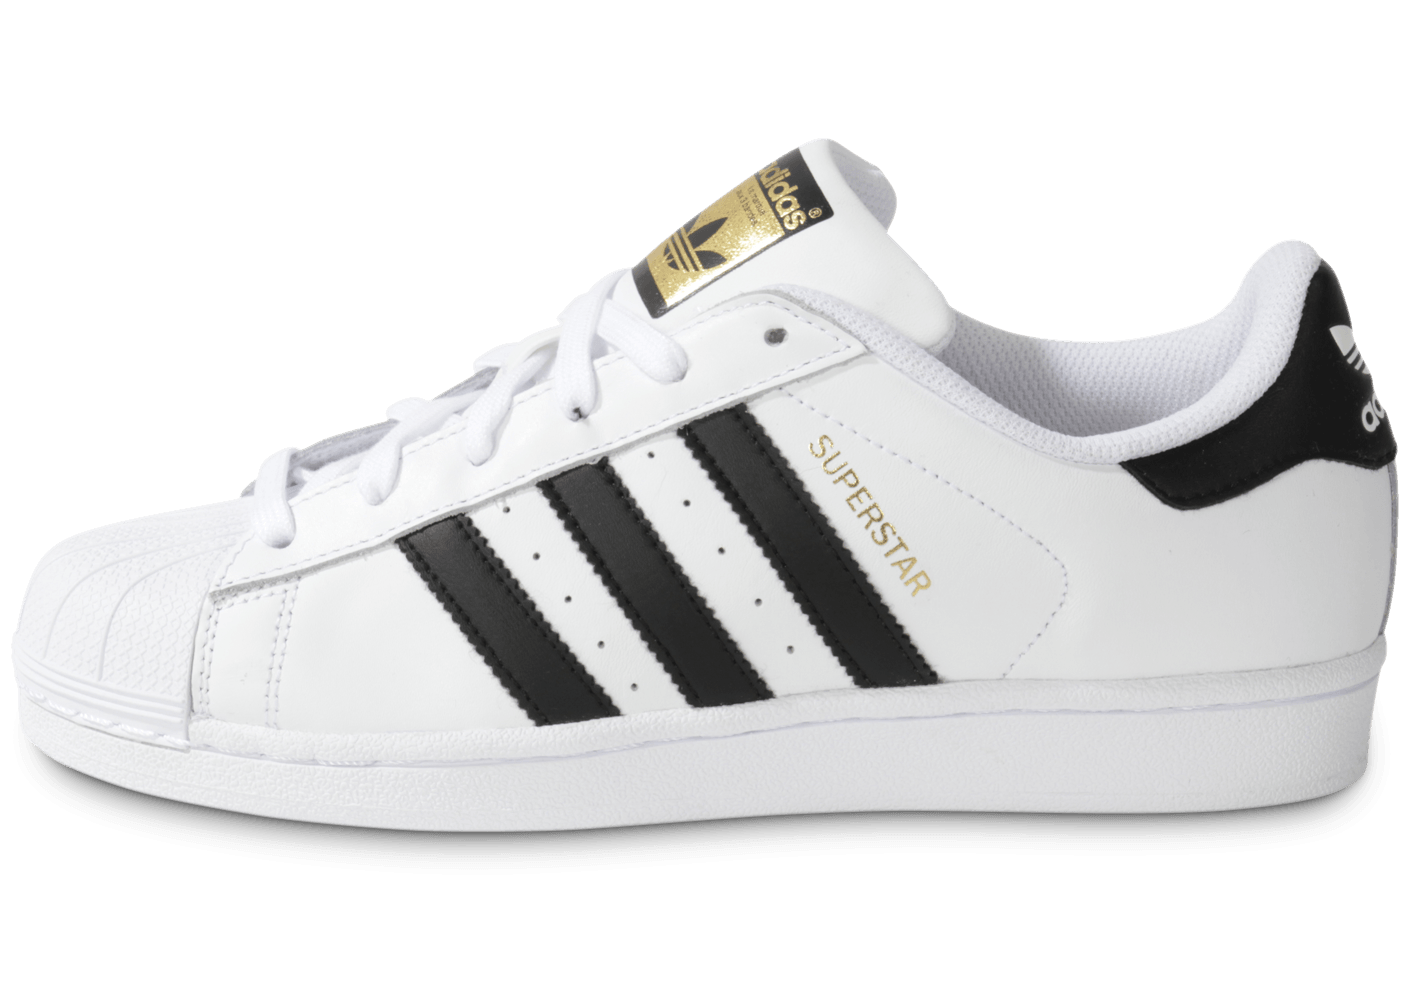 adidas Superstar Foundation blanc noir - Chaussures Baskets homme - Chausport